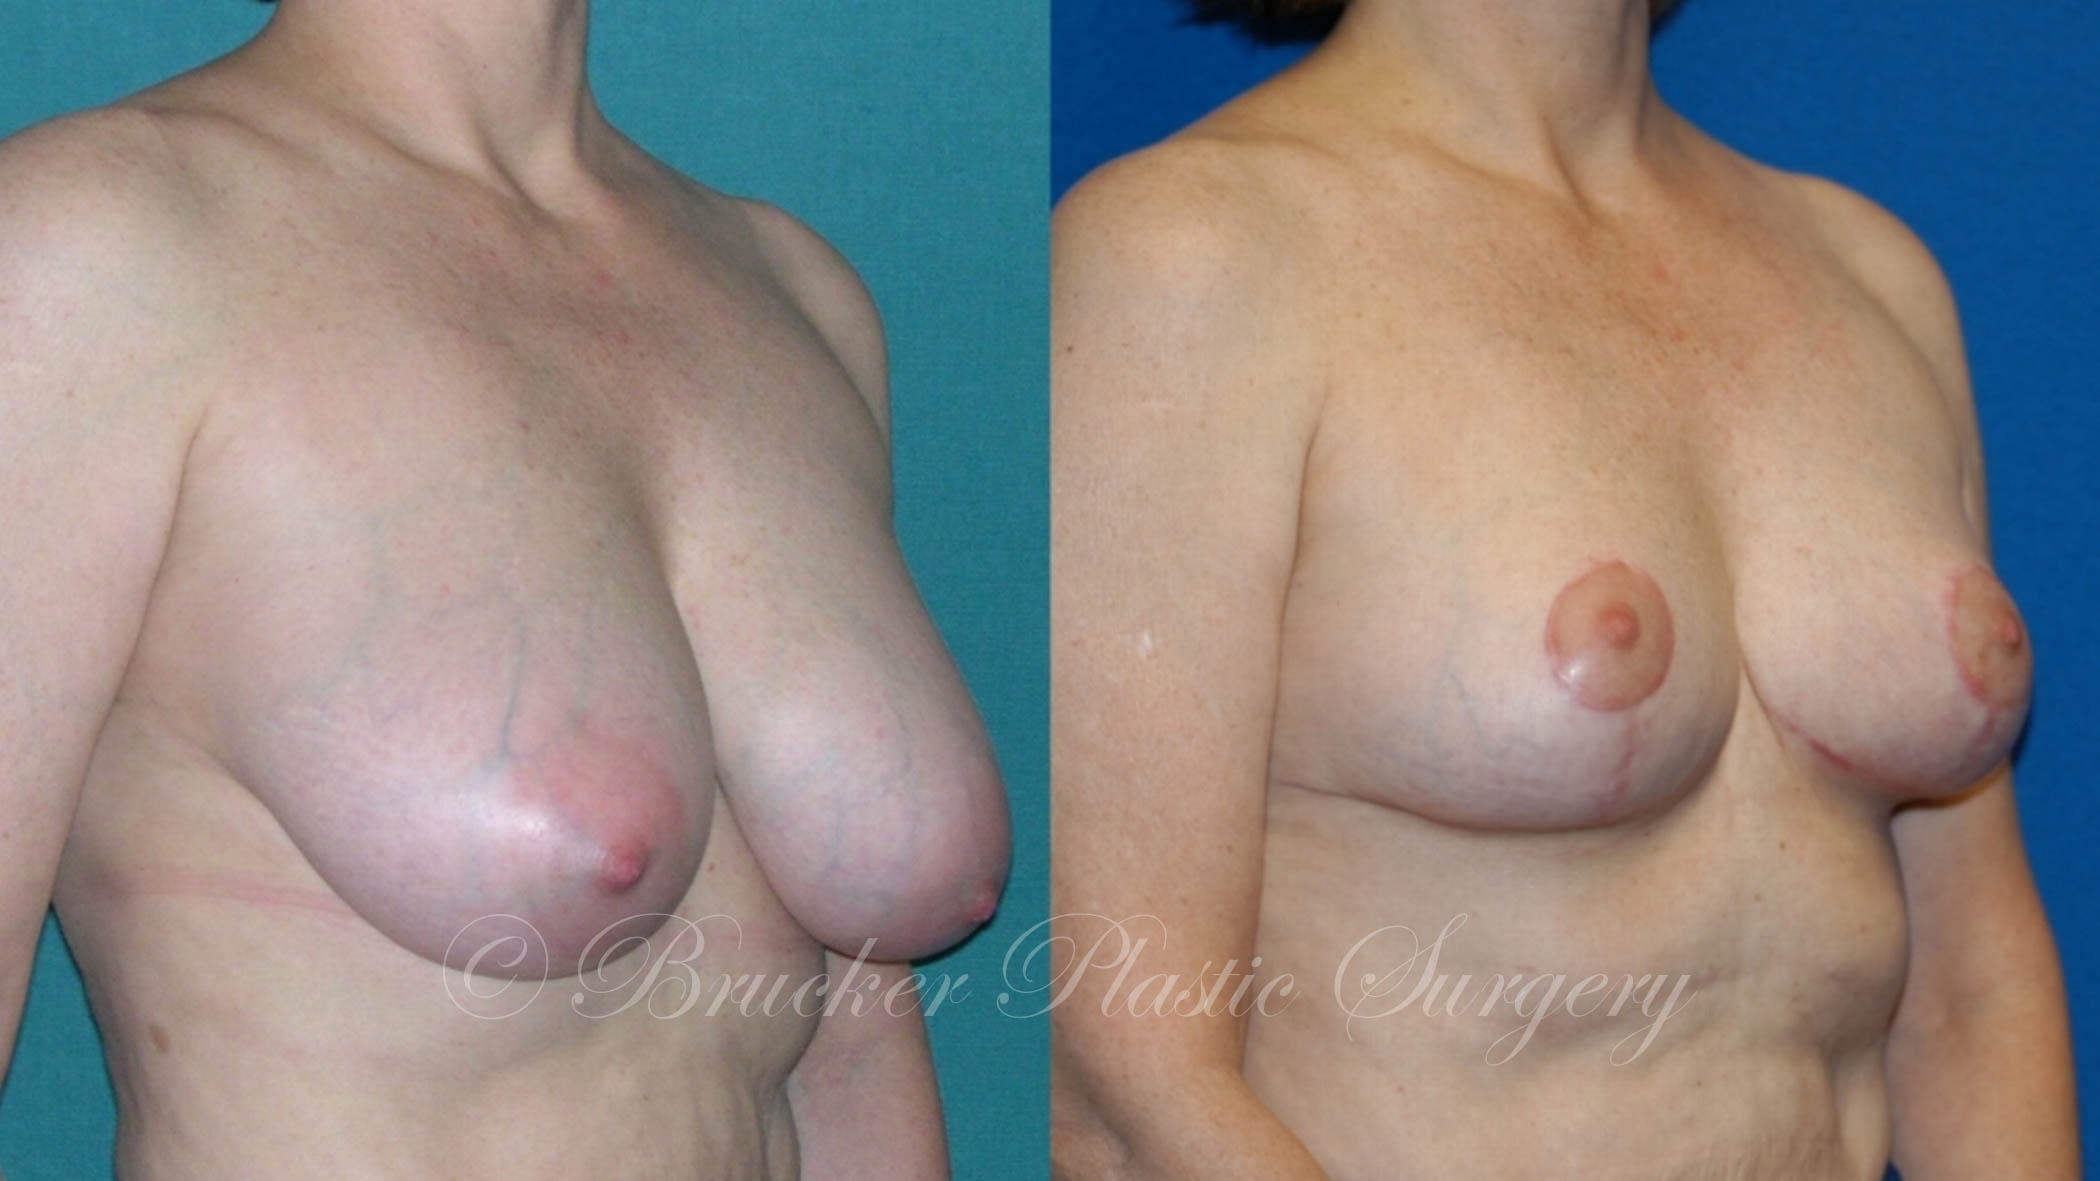 Breast Reduction La Jolla Patient 2.1